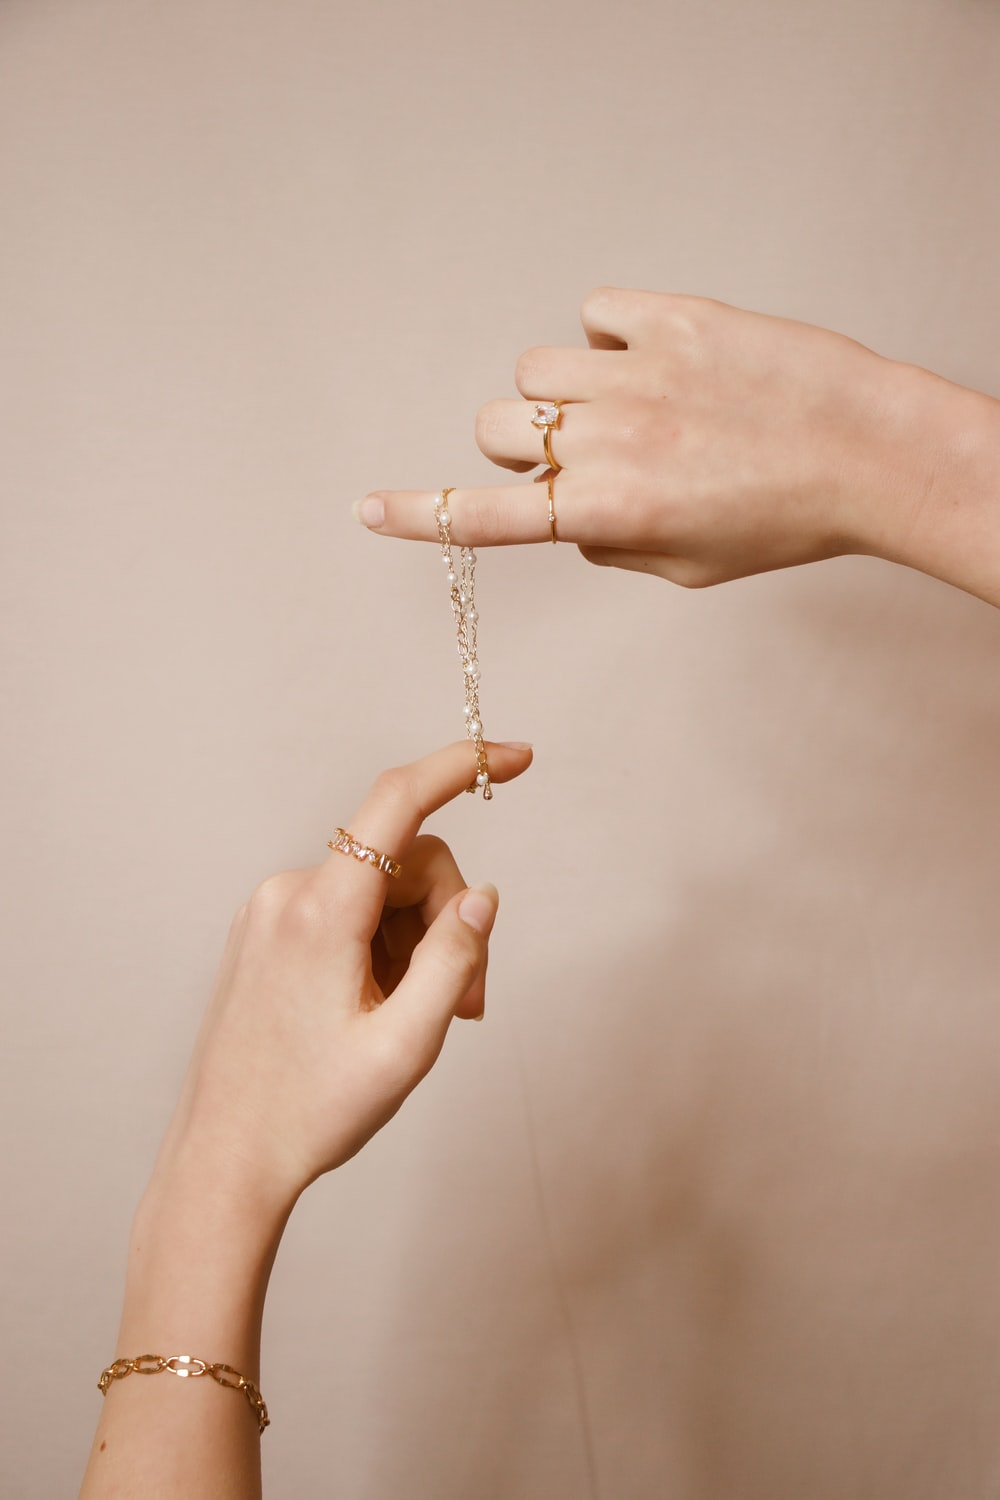 person holding silver chain necklace